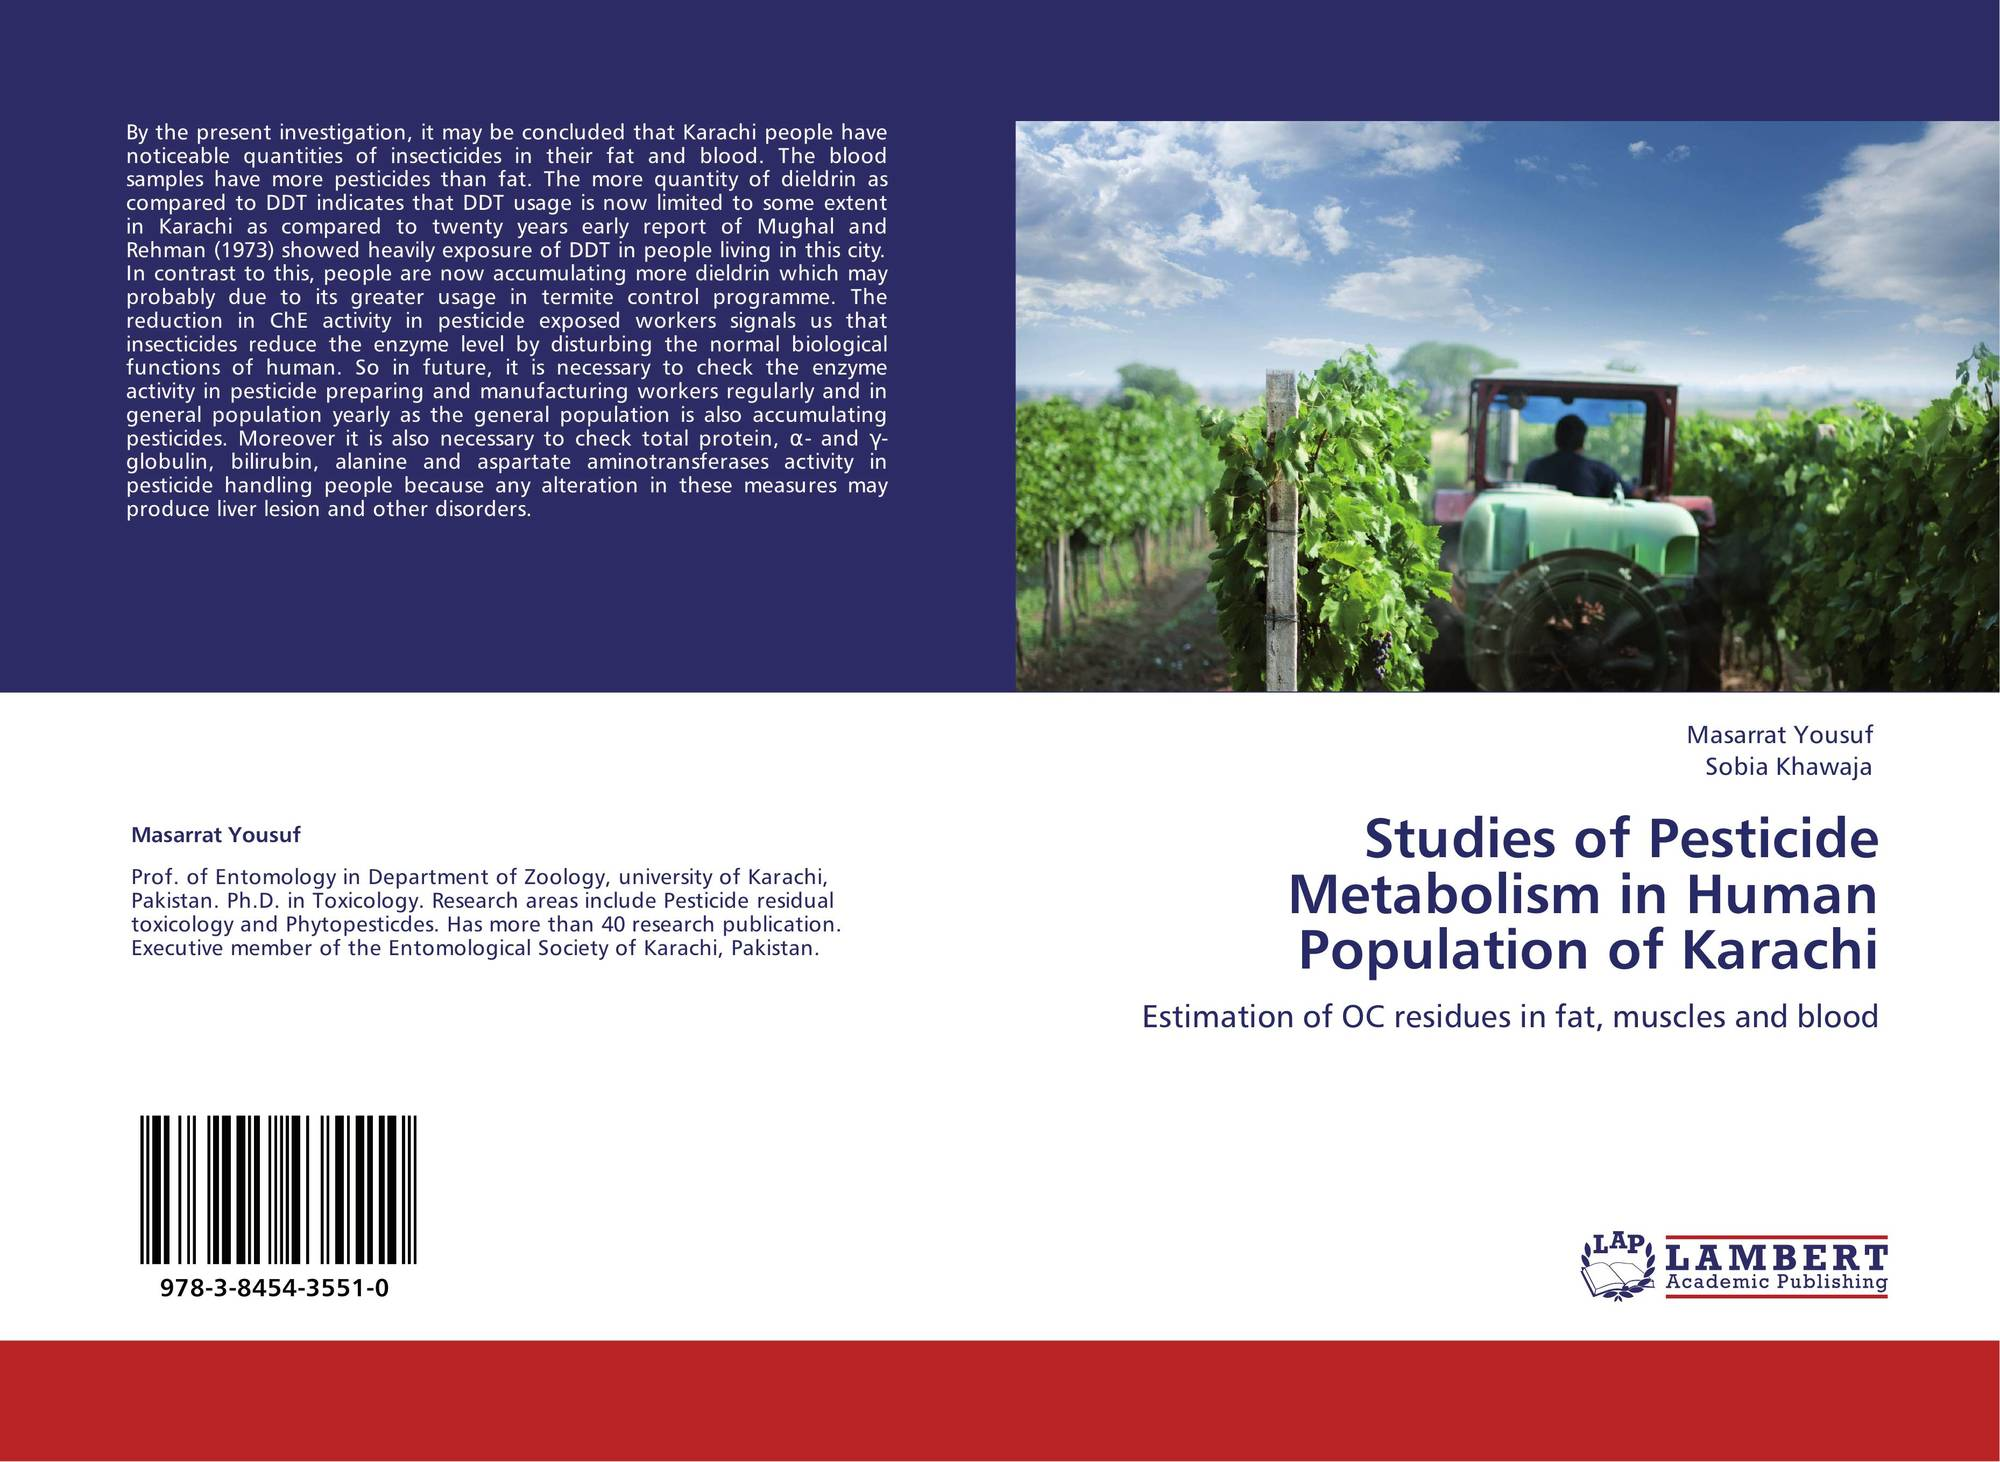 Studies of Pesticide Metabolism in Human Population of Karachi, 978